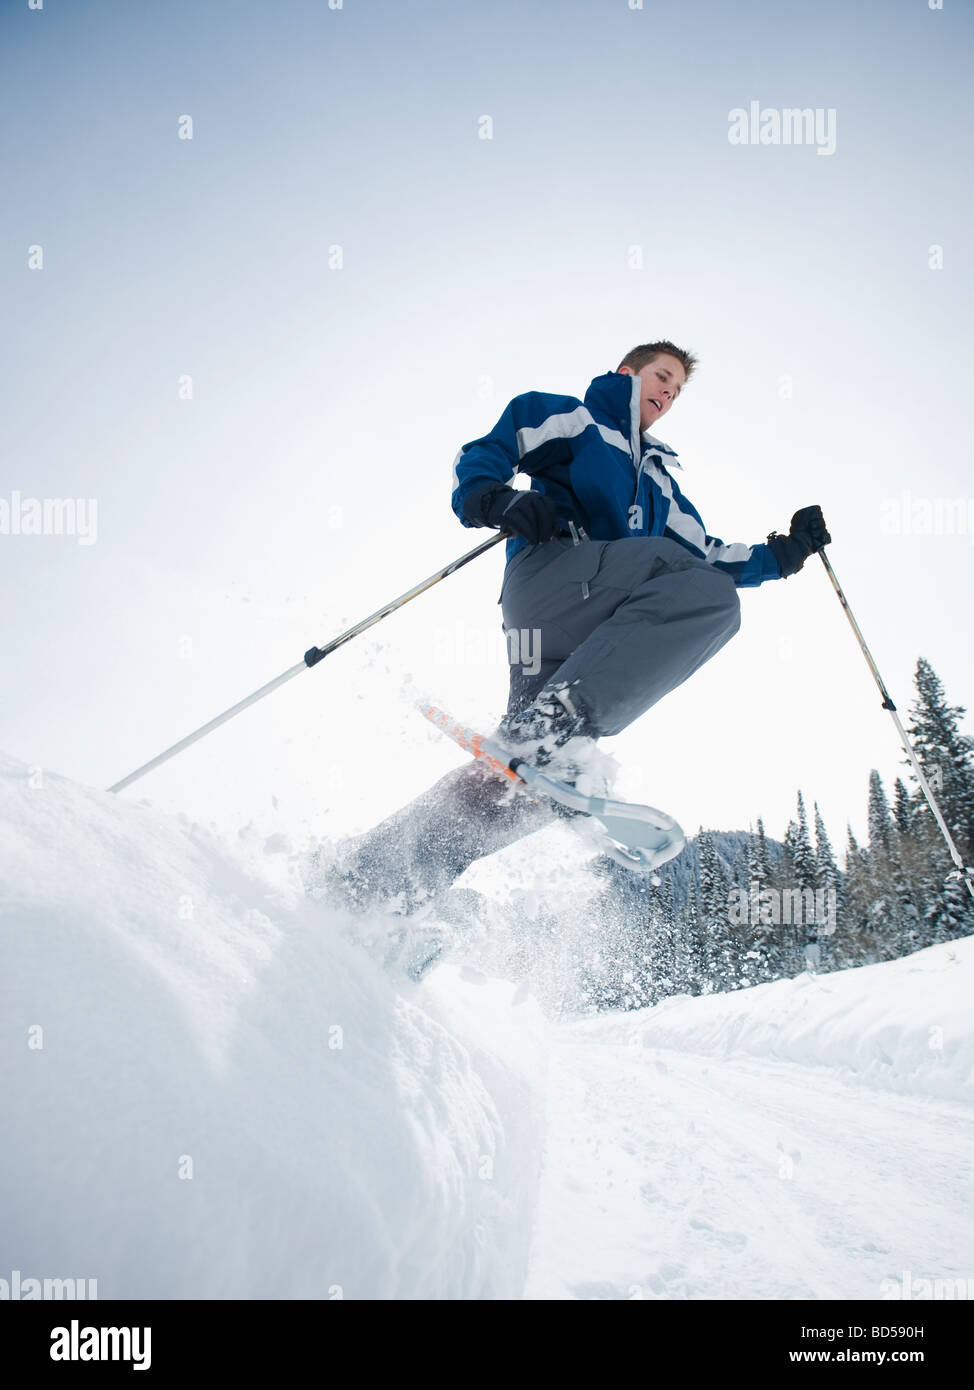 A man snow shoeing - Stock Image